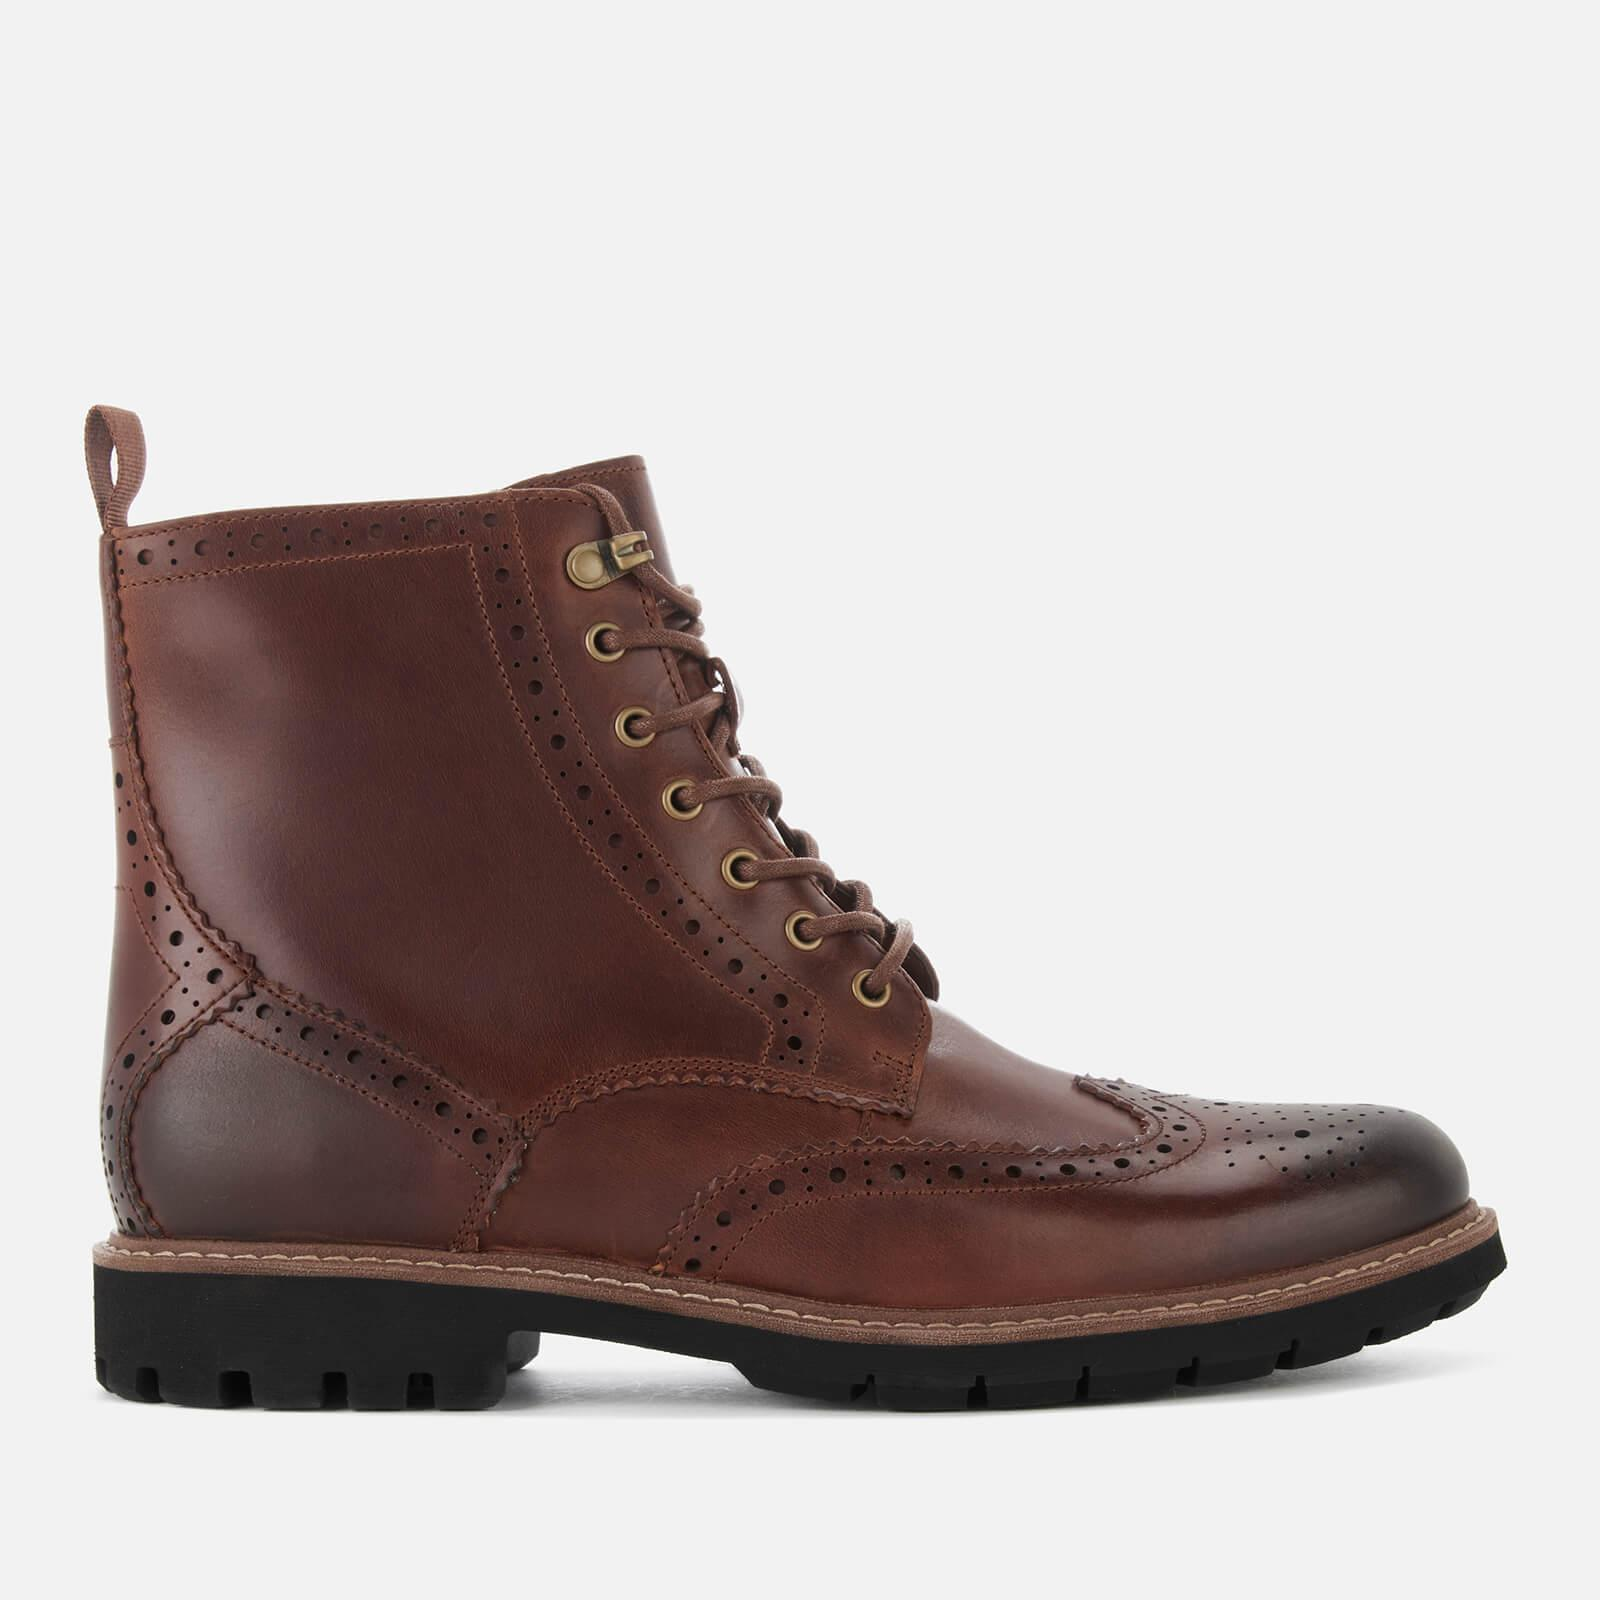 Batcombe Lord Leather Brogue Lace Up Boots